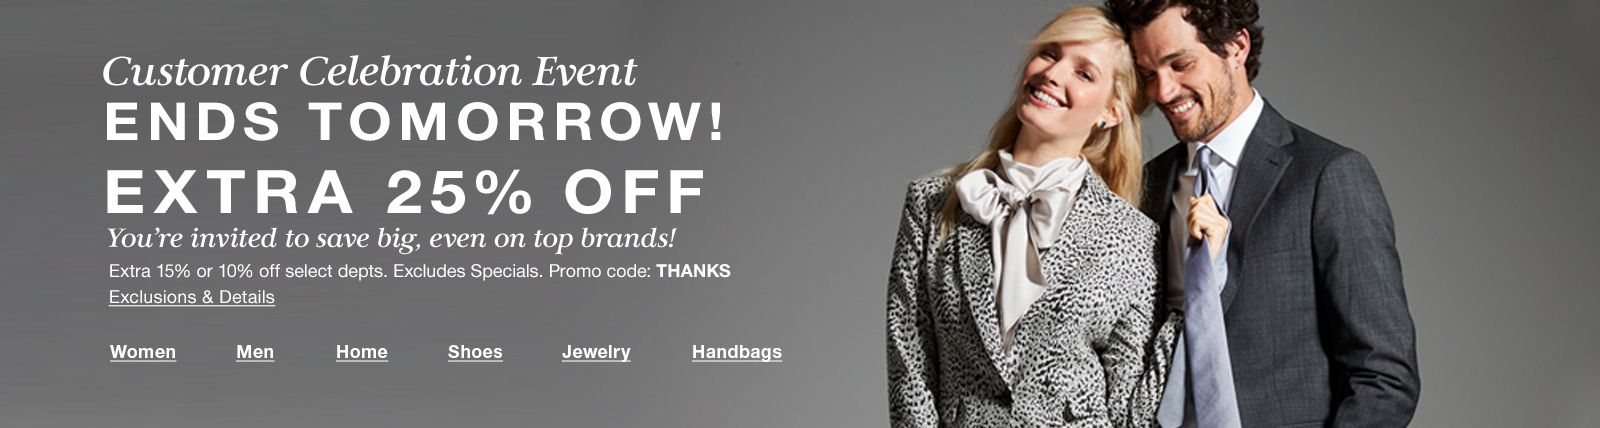 Customer Celebration Event, Ends Tomorrow! Extra 25 percent Off, Extra 15 percent or 10 percent off select depts, Excludes Special, Promo code: THANKS, Exclusions and Details, Women, Men, Home, Shoes, Jewelry, Handbags